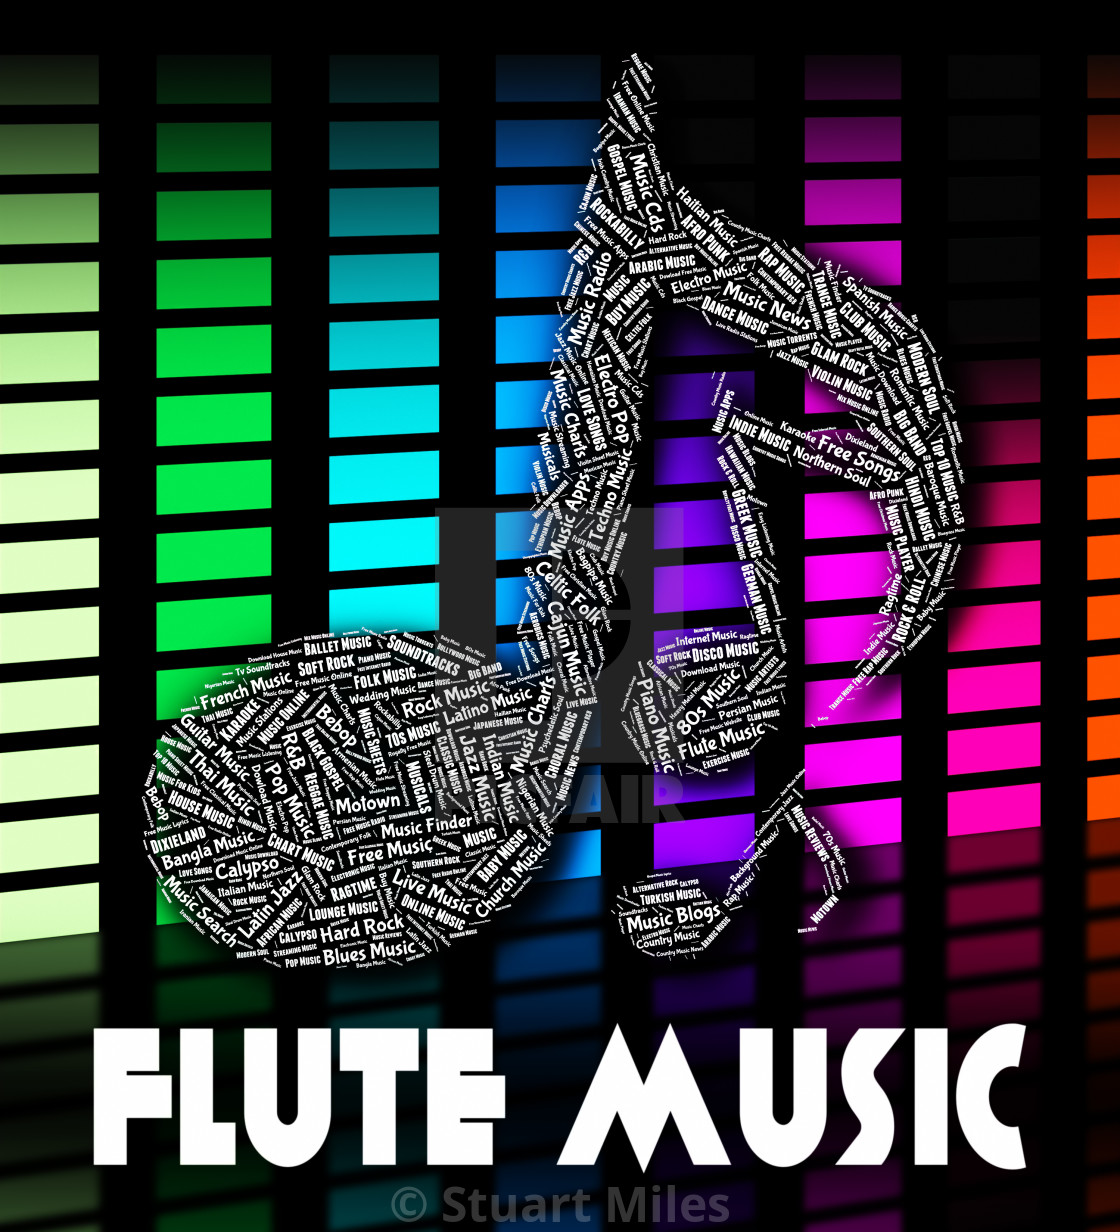 Flute Music Means Sound Track And Audio - License, download or print